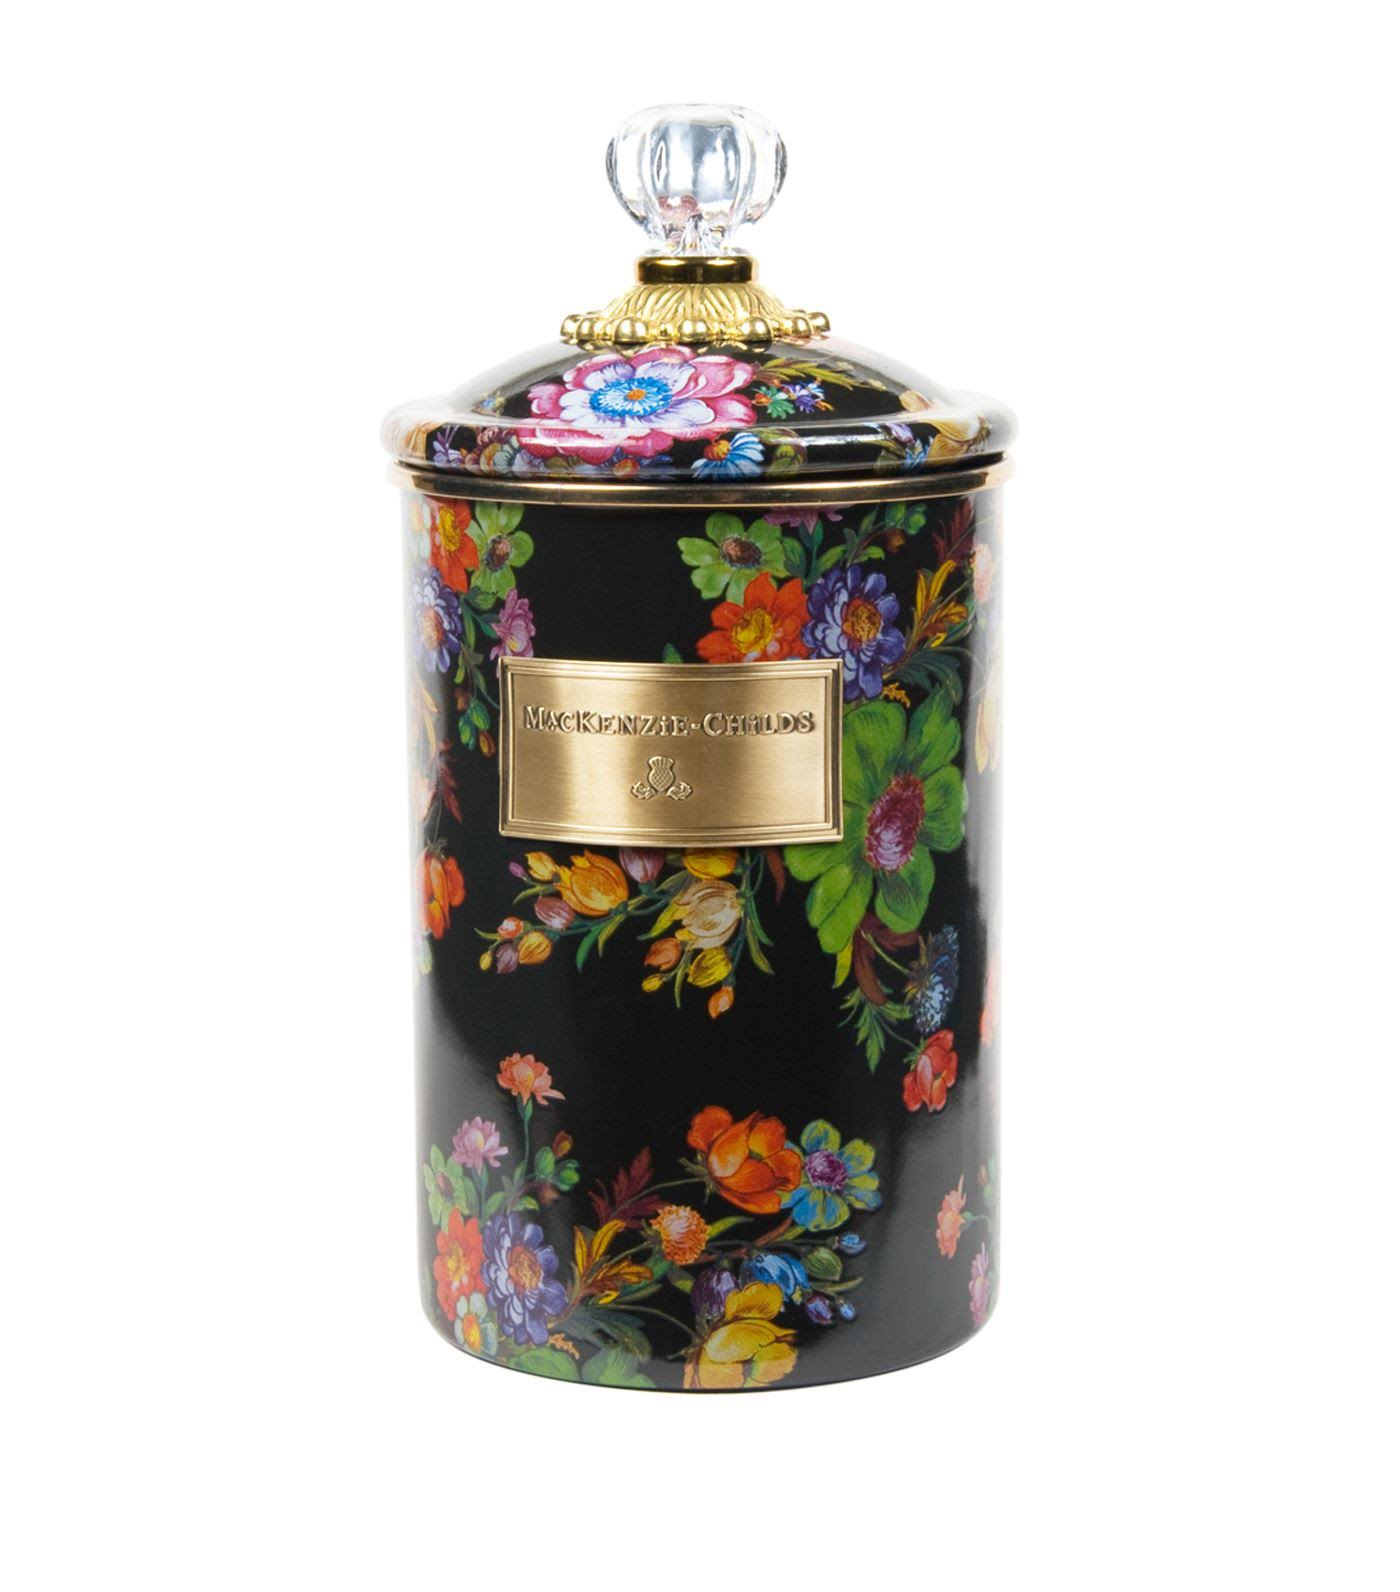 MacKenzie-Childs Flower Market Canister, Large, Black